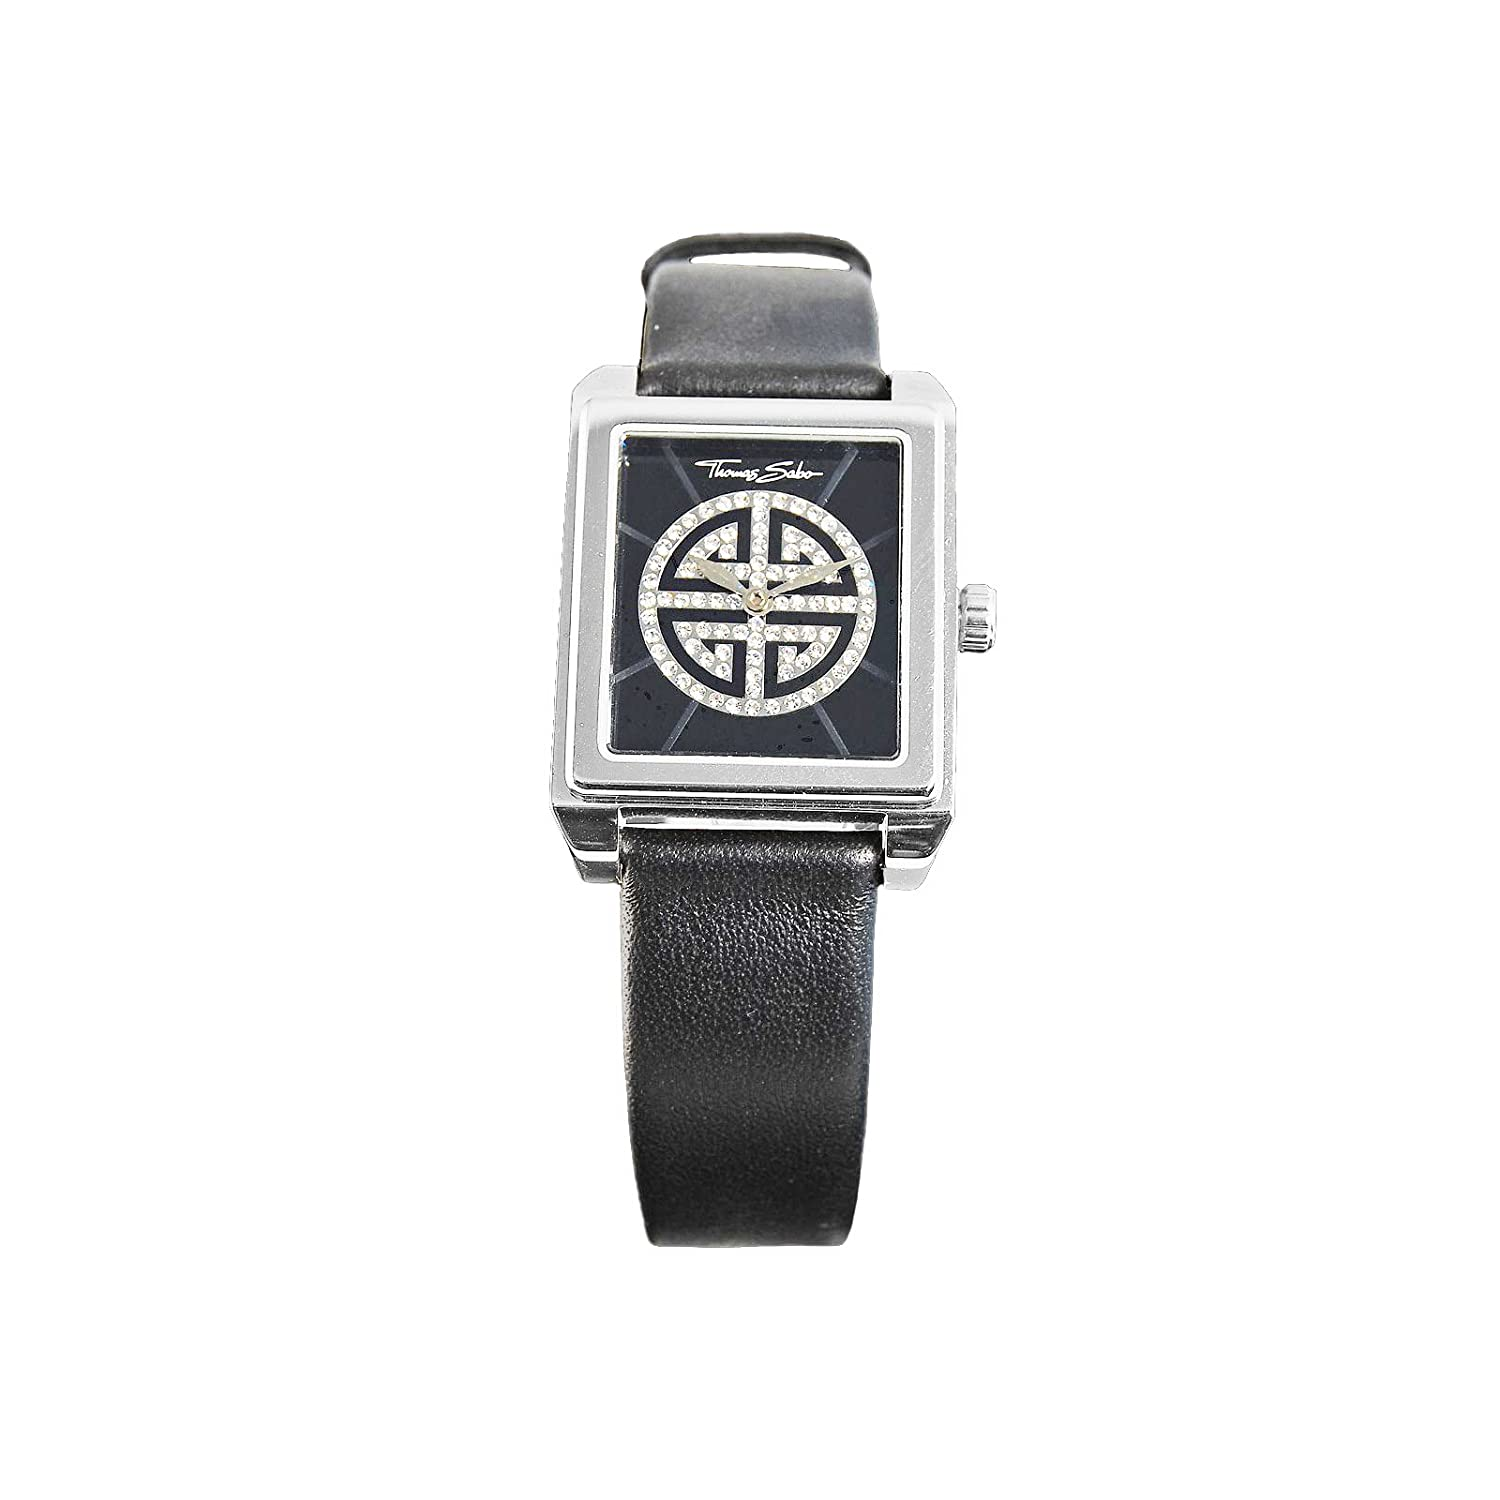 Womens Watches 【日本未発売】THOMAS SABO(トーマスサボ) 【日本未発売】THOMAS SABO(トーマスサボ) Rebel at Heart WA0059-203-203-27,5 B00AKDZMEG